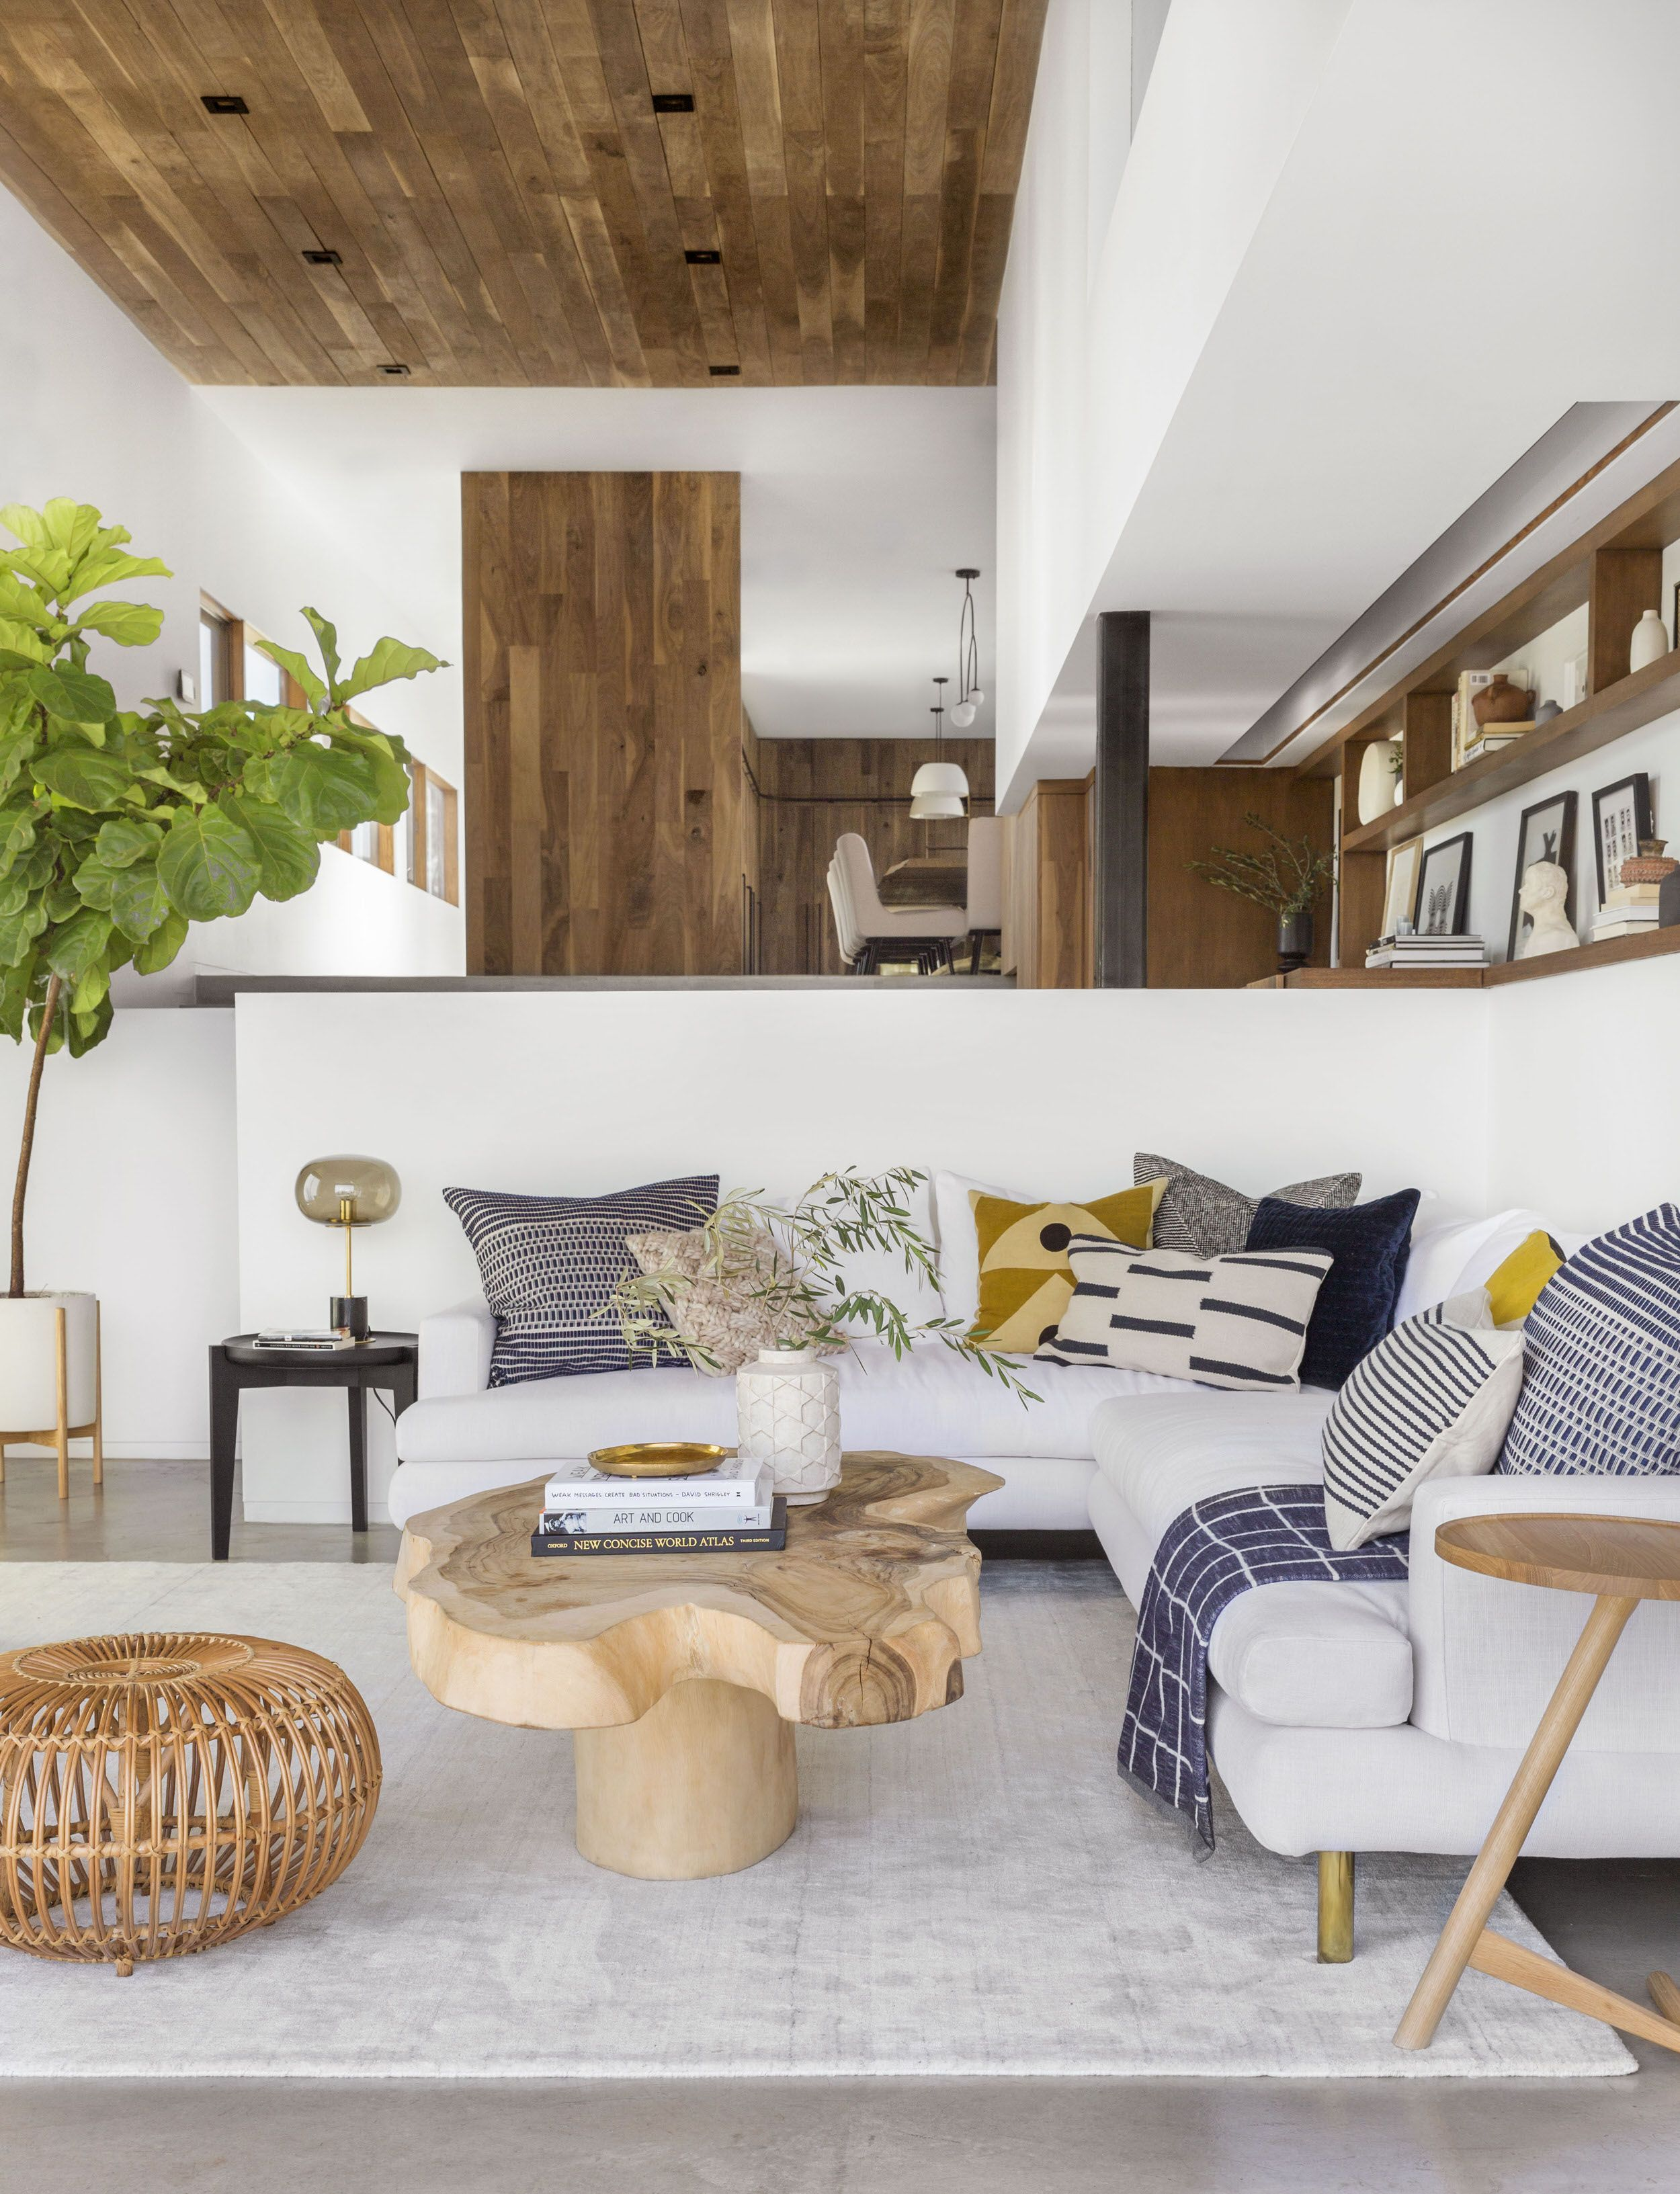 Contemporary decor the best selection of modern interior design ideas to improve your home decor contemporary design with a refined taste for a modern